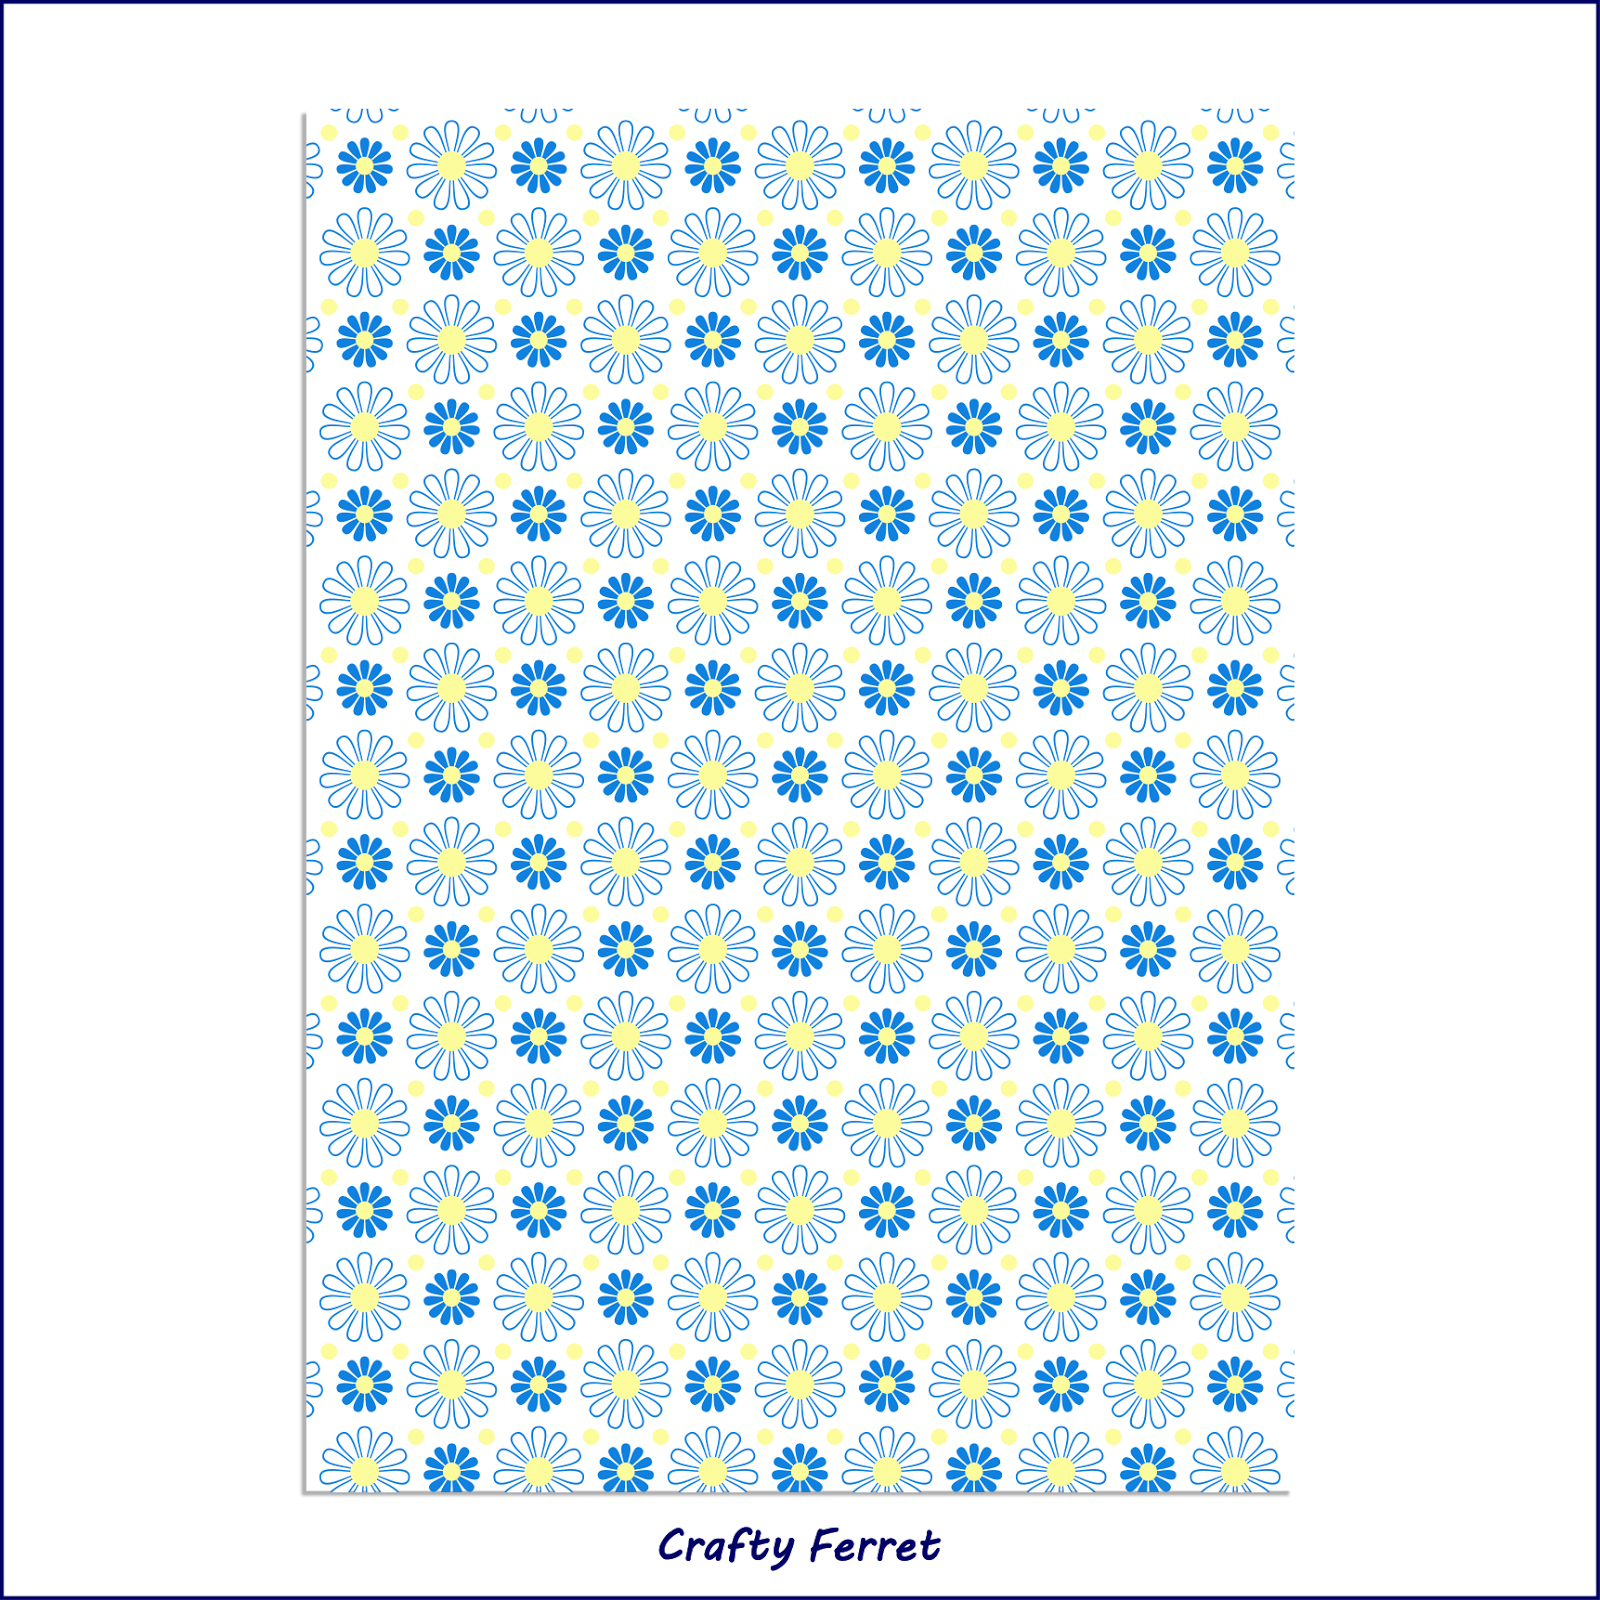 Simple daisy blue and yellow printable pattern design  free sample test print.